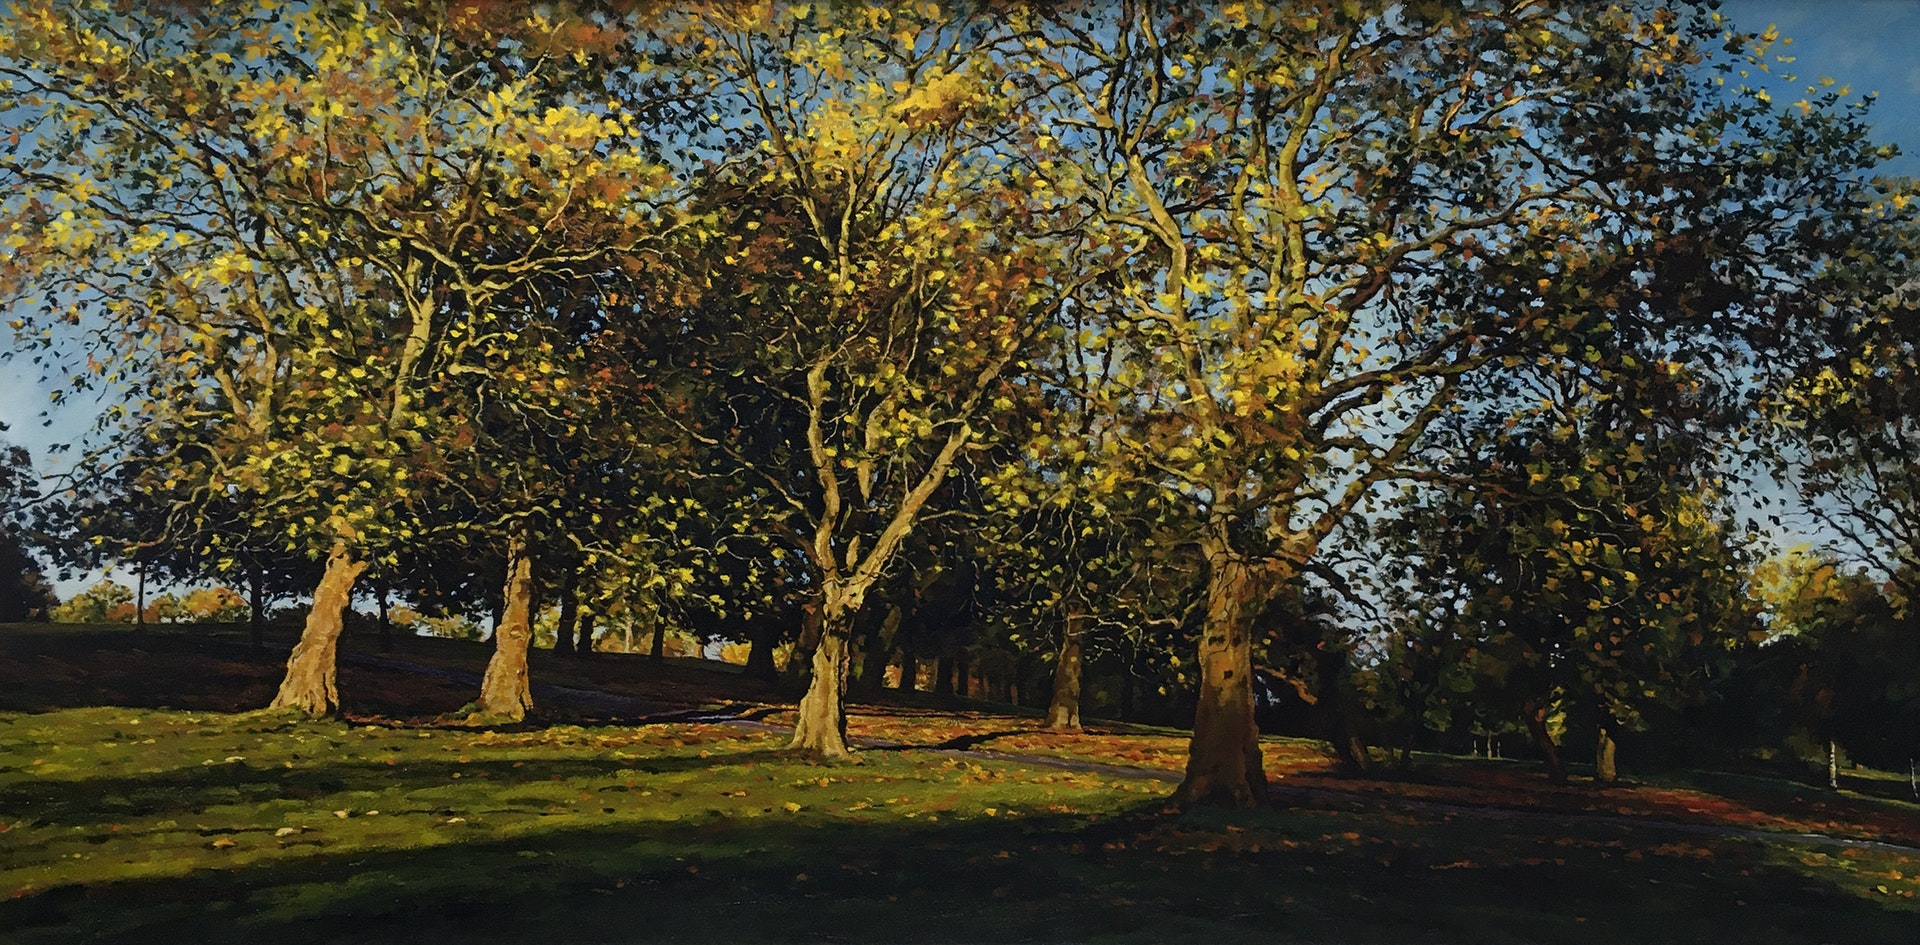 'Autumn light.', Mark McLaughlin, Oil on canvas, 56 x 112 cm